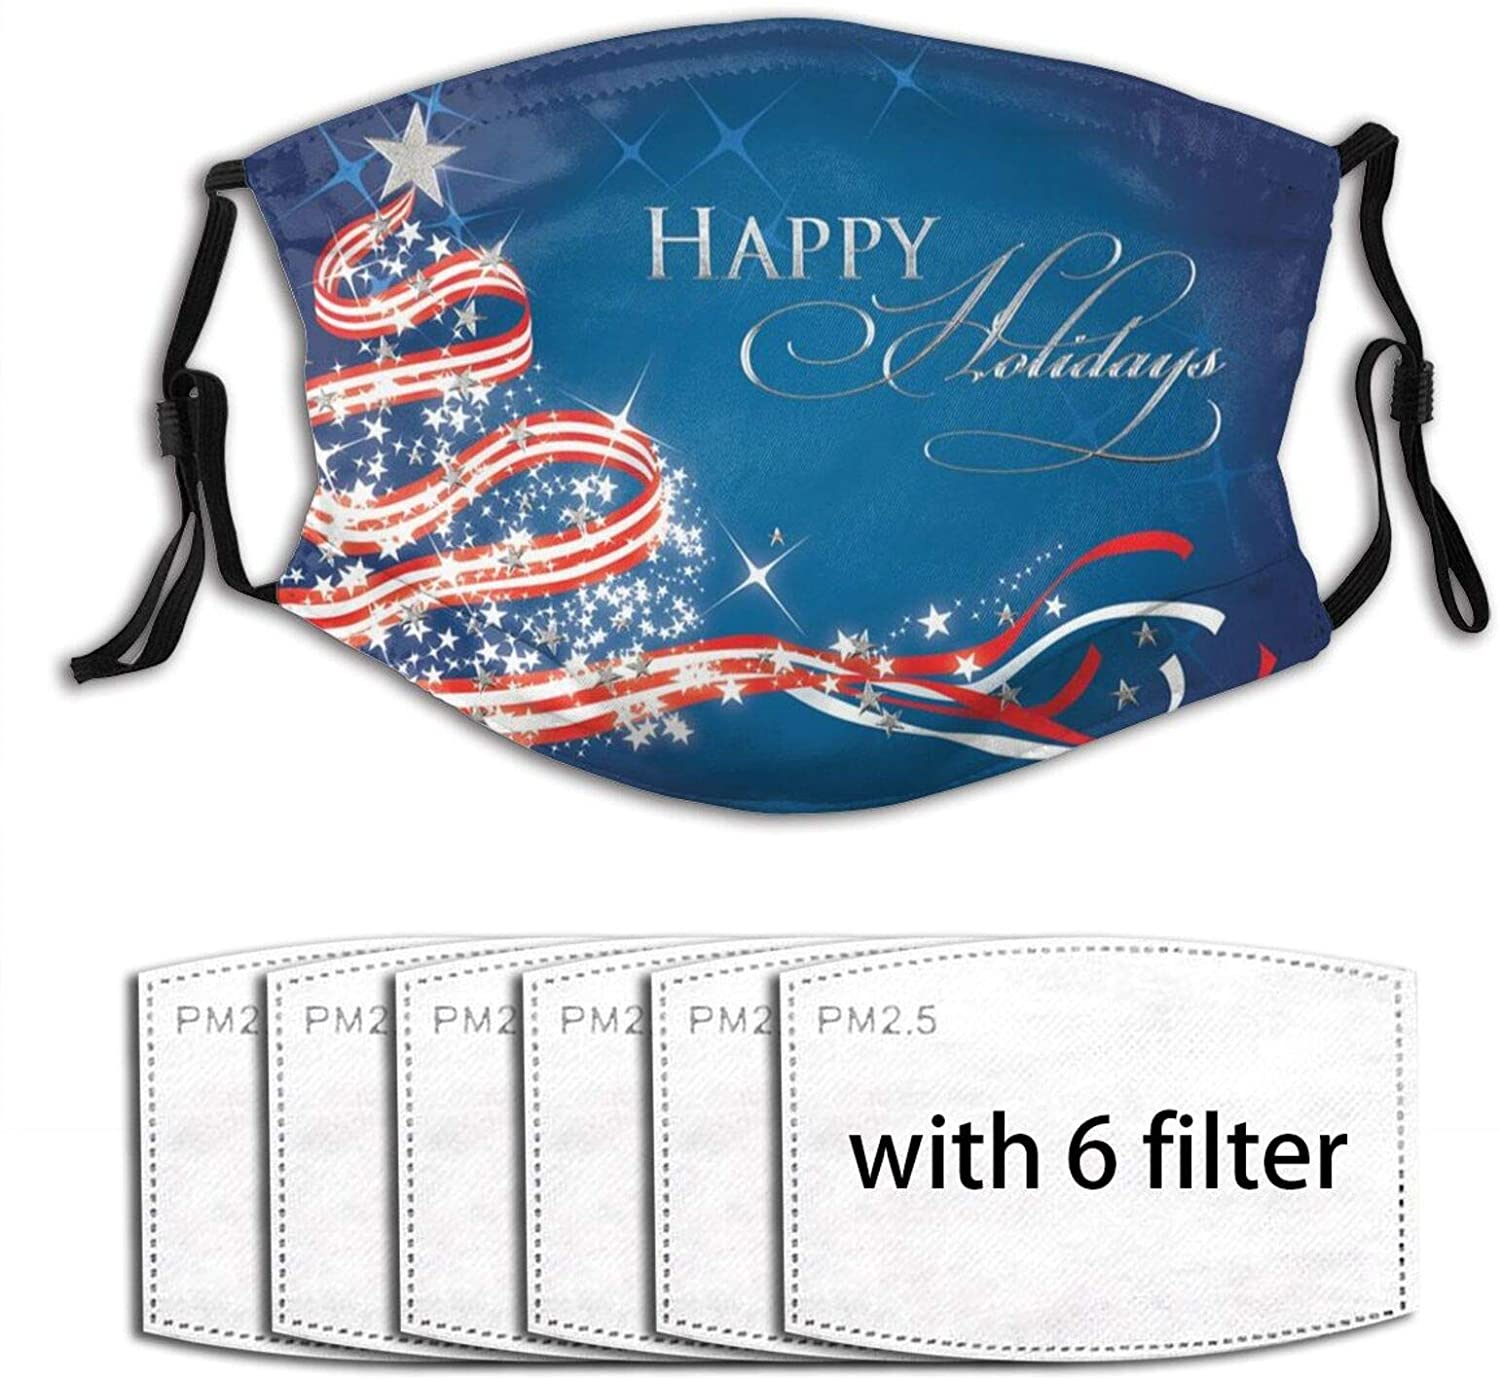 Patriotic Tree Christmas Card Face Mask With Filter Pocket And 6 Pcs Filters Washable Face Bandanas Balaclava Reusable Fabric Mask For Men Women